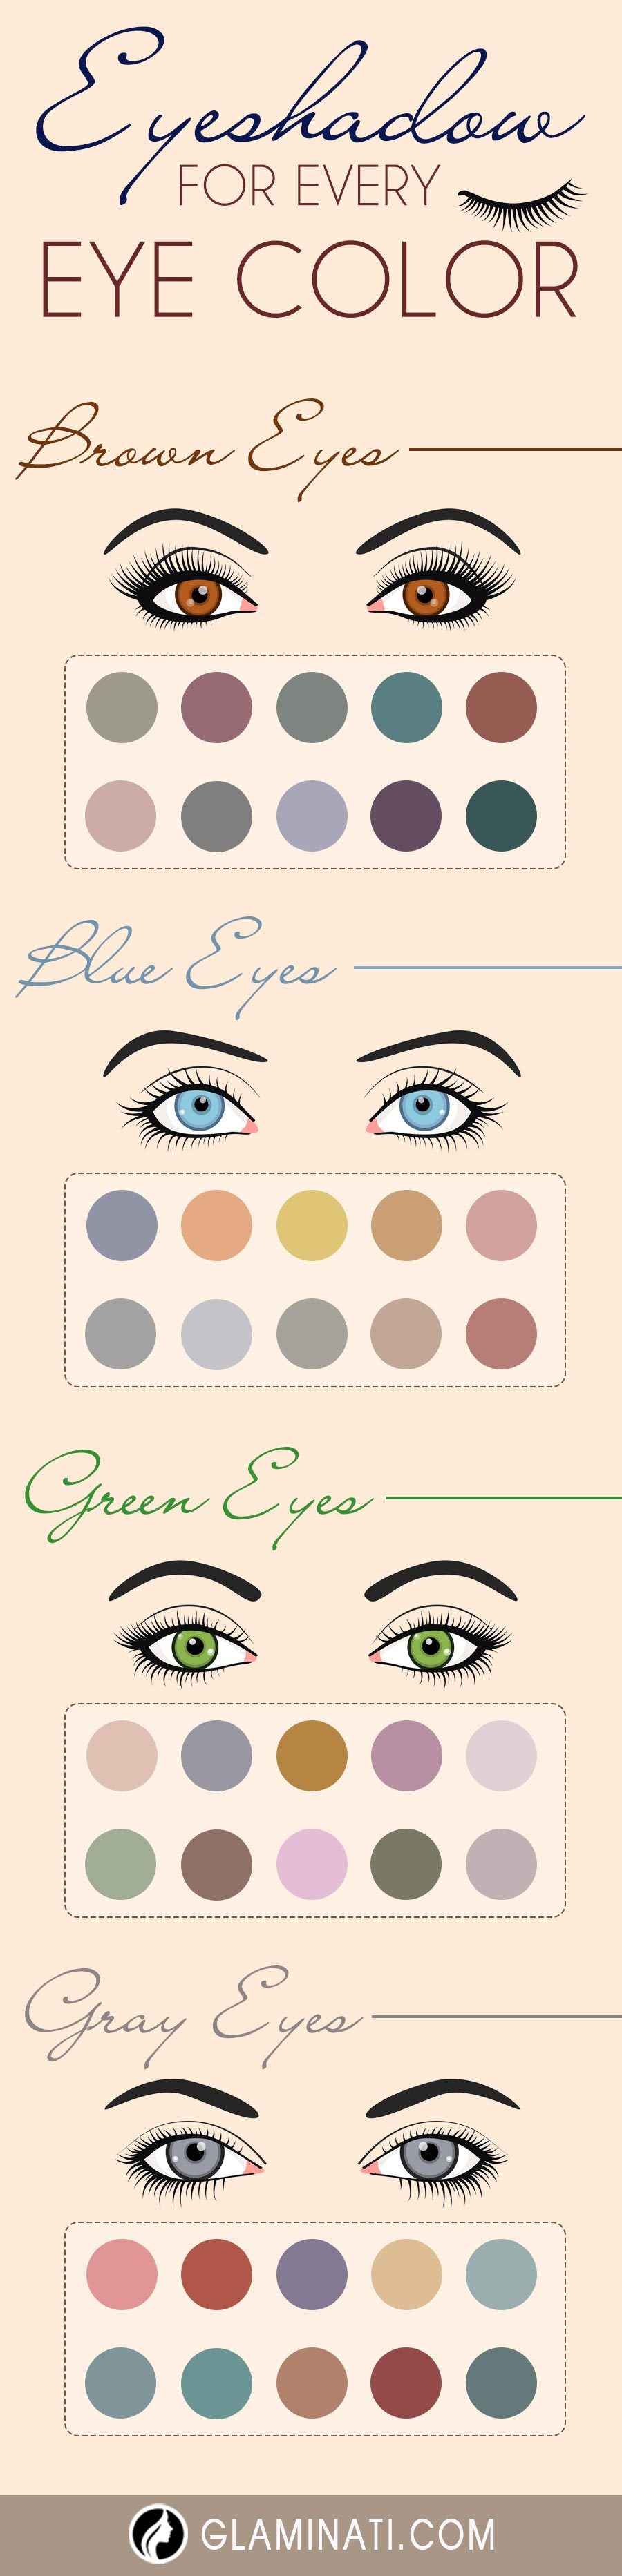 Ways of Applying Eyeshadow for Brown Eyes